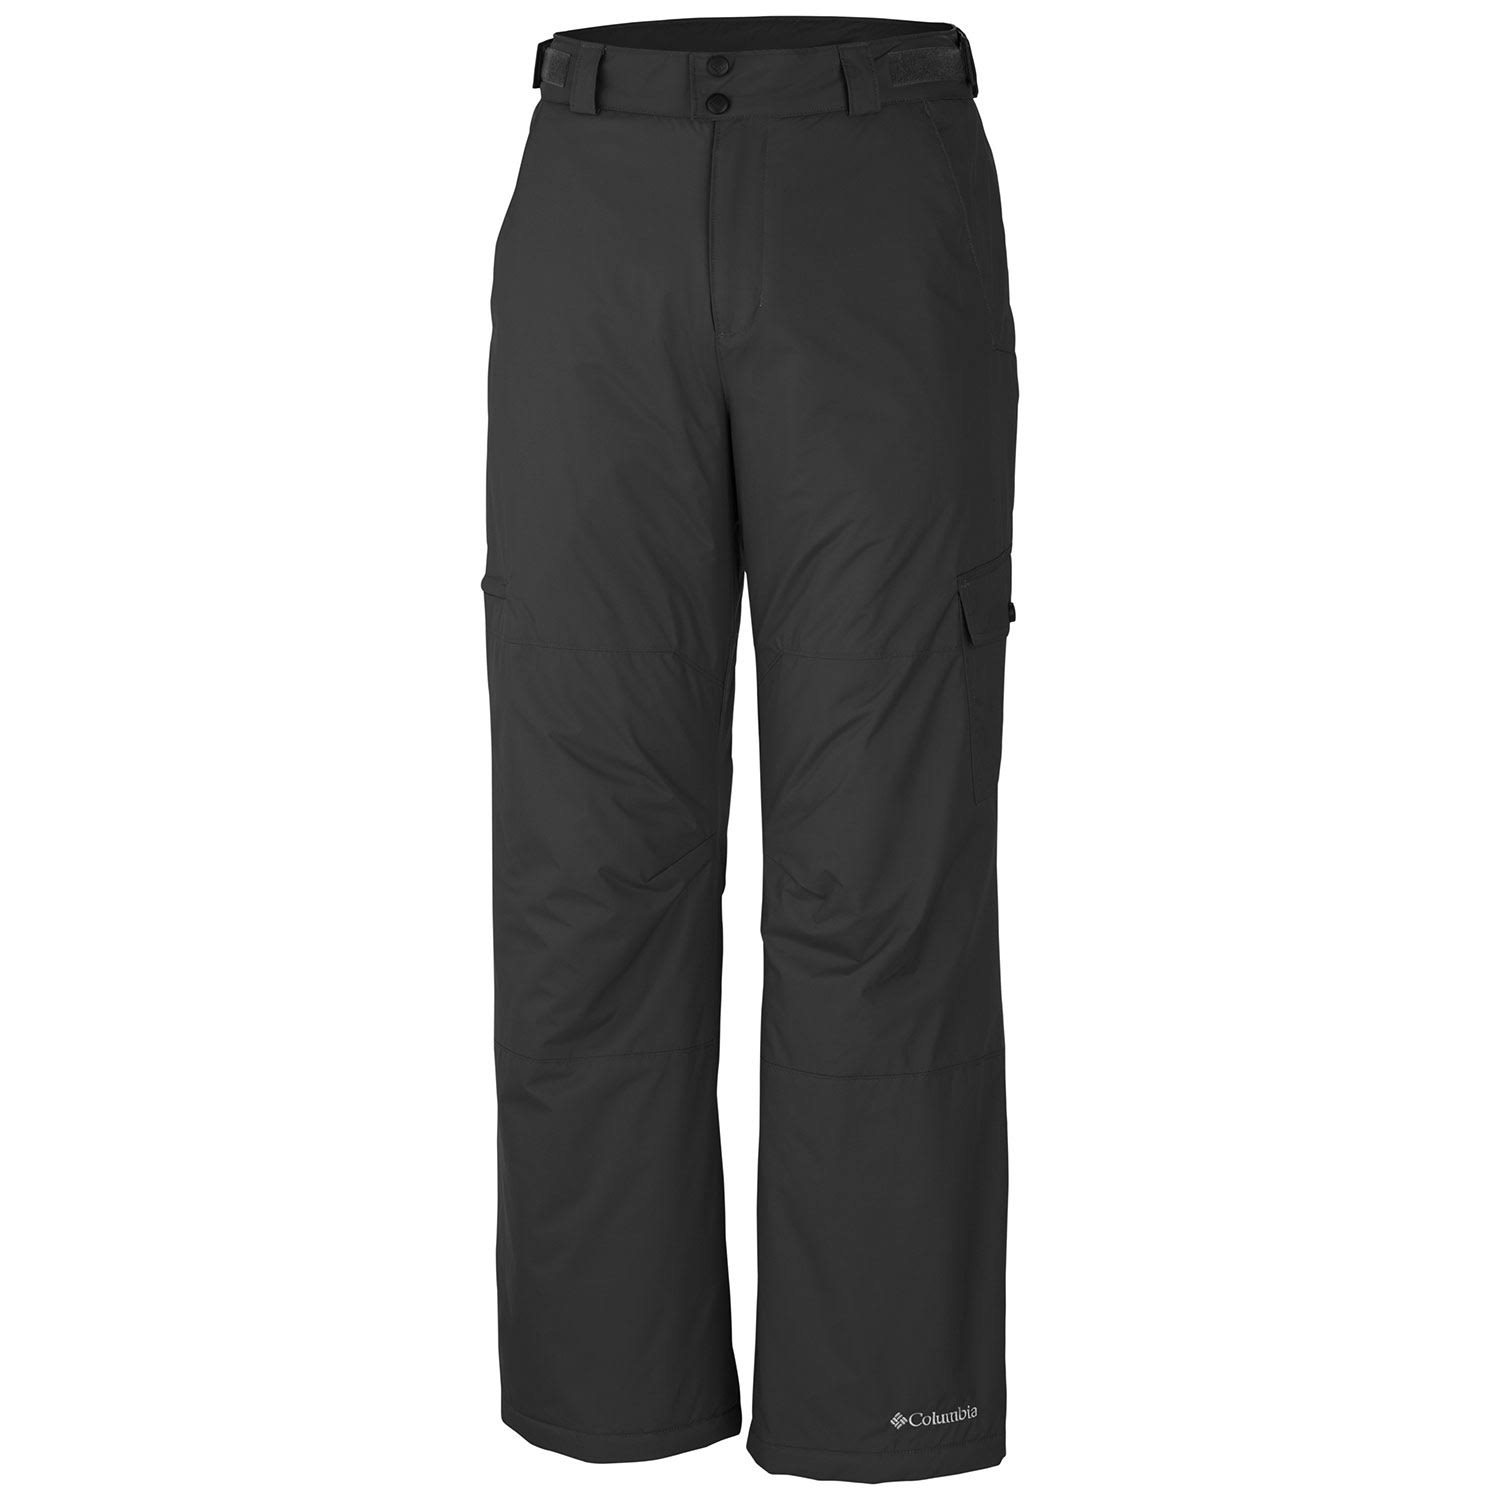 Columbia Men's Snow Gun Pants - Black